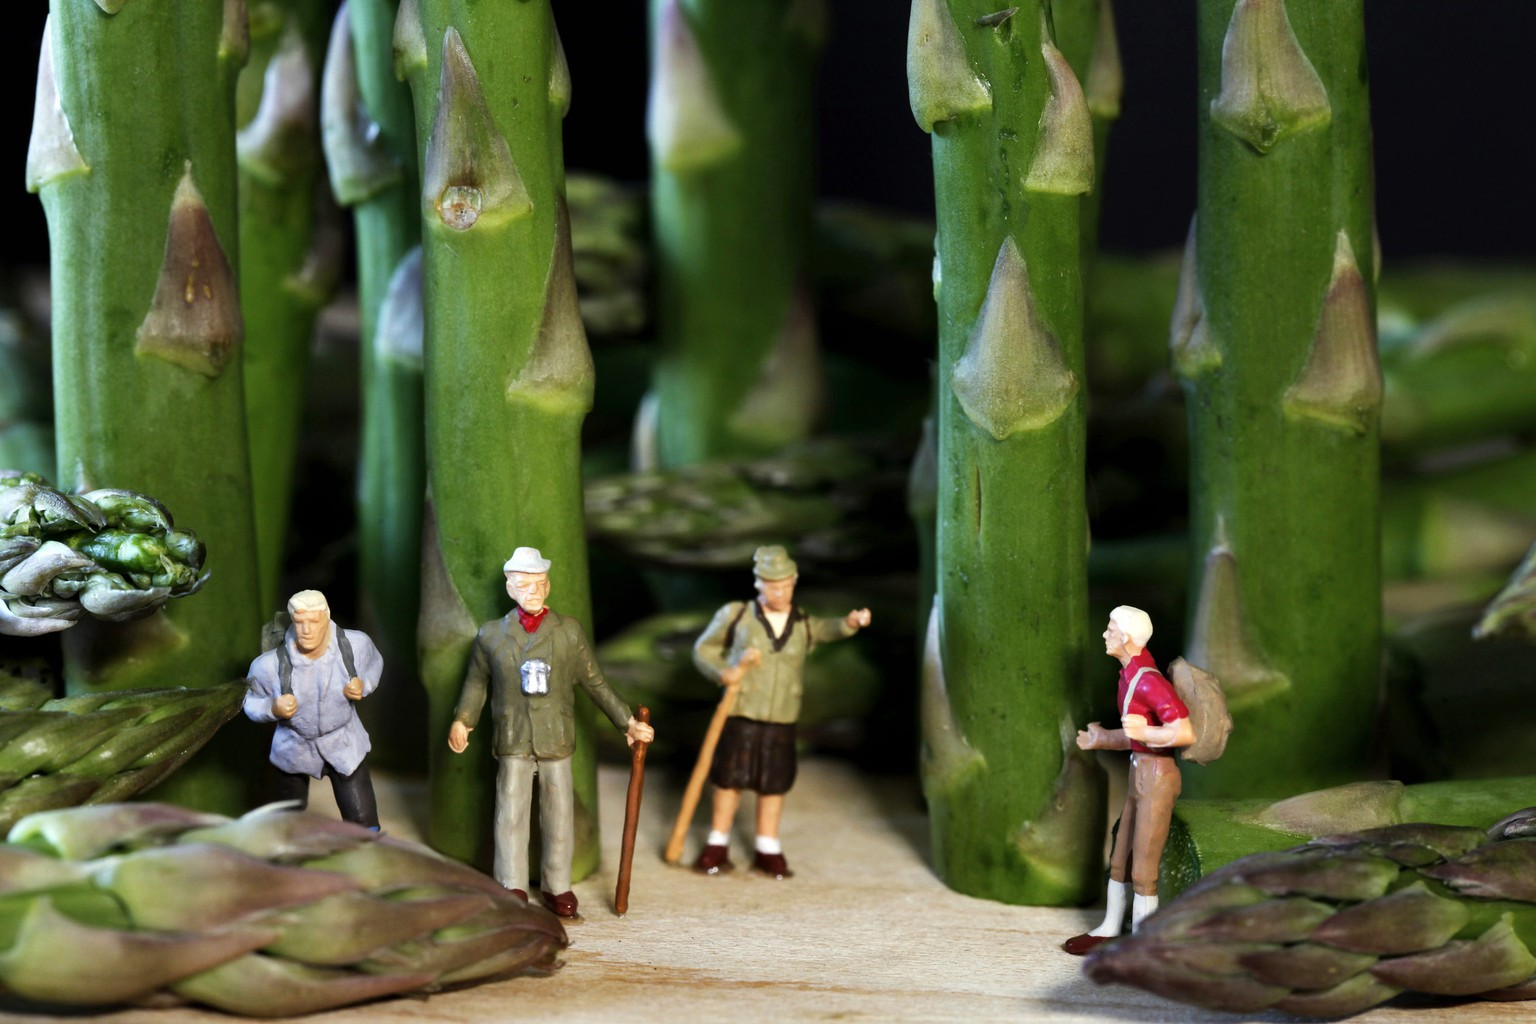 PIC FROM CATERS NEWS AGENCY - (PICTURED: MINIATURE PEOPLE SURROUNDED BY ASPARAGUS.)- An ingenious artist places miniature models next to normal-sized food to make it look like they have BIG appetites. Laurie McCormick uses fruits and vegetables to create every day scenes for her tiny people. In one scene, the 63-year-old uses asparagus spears instead of a forest for a group of four small explorers. For another miniature mountaineering experience, Laurie, from Los Angeles, USA, uses multi-coloured peppers in place of rocks as climbers clamber across. Financial advisor Laurie has been creating her miniscule masterpieces since 2011. SEE CATERS COPY.   (FOTO: DUKAS/CATERSNEWS) *** Local Caption *** PIC FROM CATERS NEWS AGENCY - (PICTURED: MINIATURE PEOPLE SURROUNDED BY ASPARAGUS.)- An ingenious artist places miniature models next to normal-sized food to make it look like they have BIG appetites. Laurie McCormick uses fruits and vegetables to create e